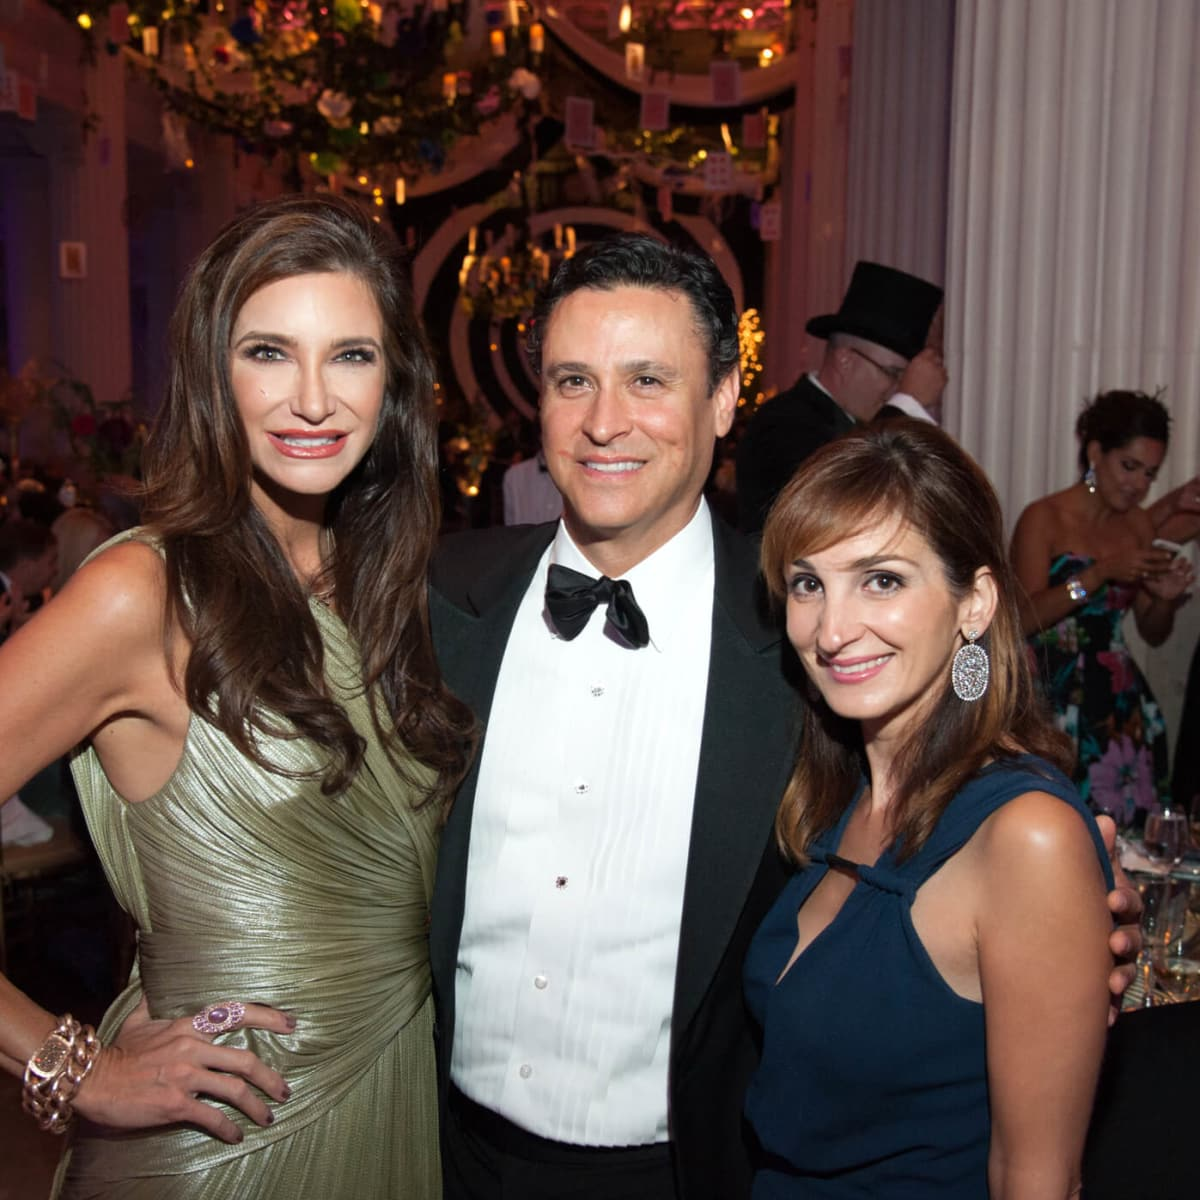 Houston, Childrens Museum of Houston Mad Hatters Ball, Oct. 2016, Melissa Mithoff, Glen Gonzalez, Haydeh Davoudi